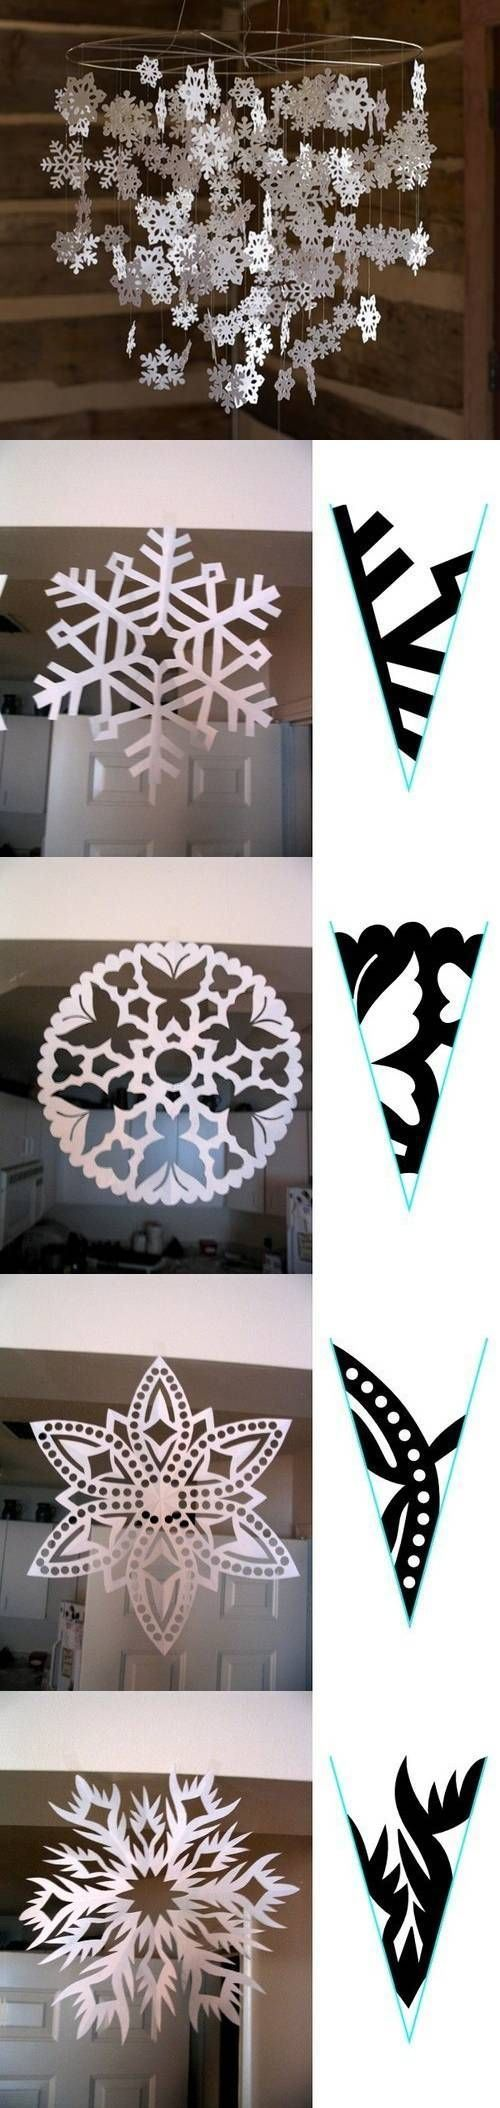 Snowflake patterns...would be pretty to hang from a chandelier or window.